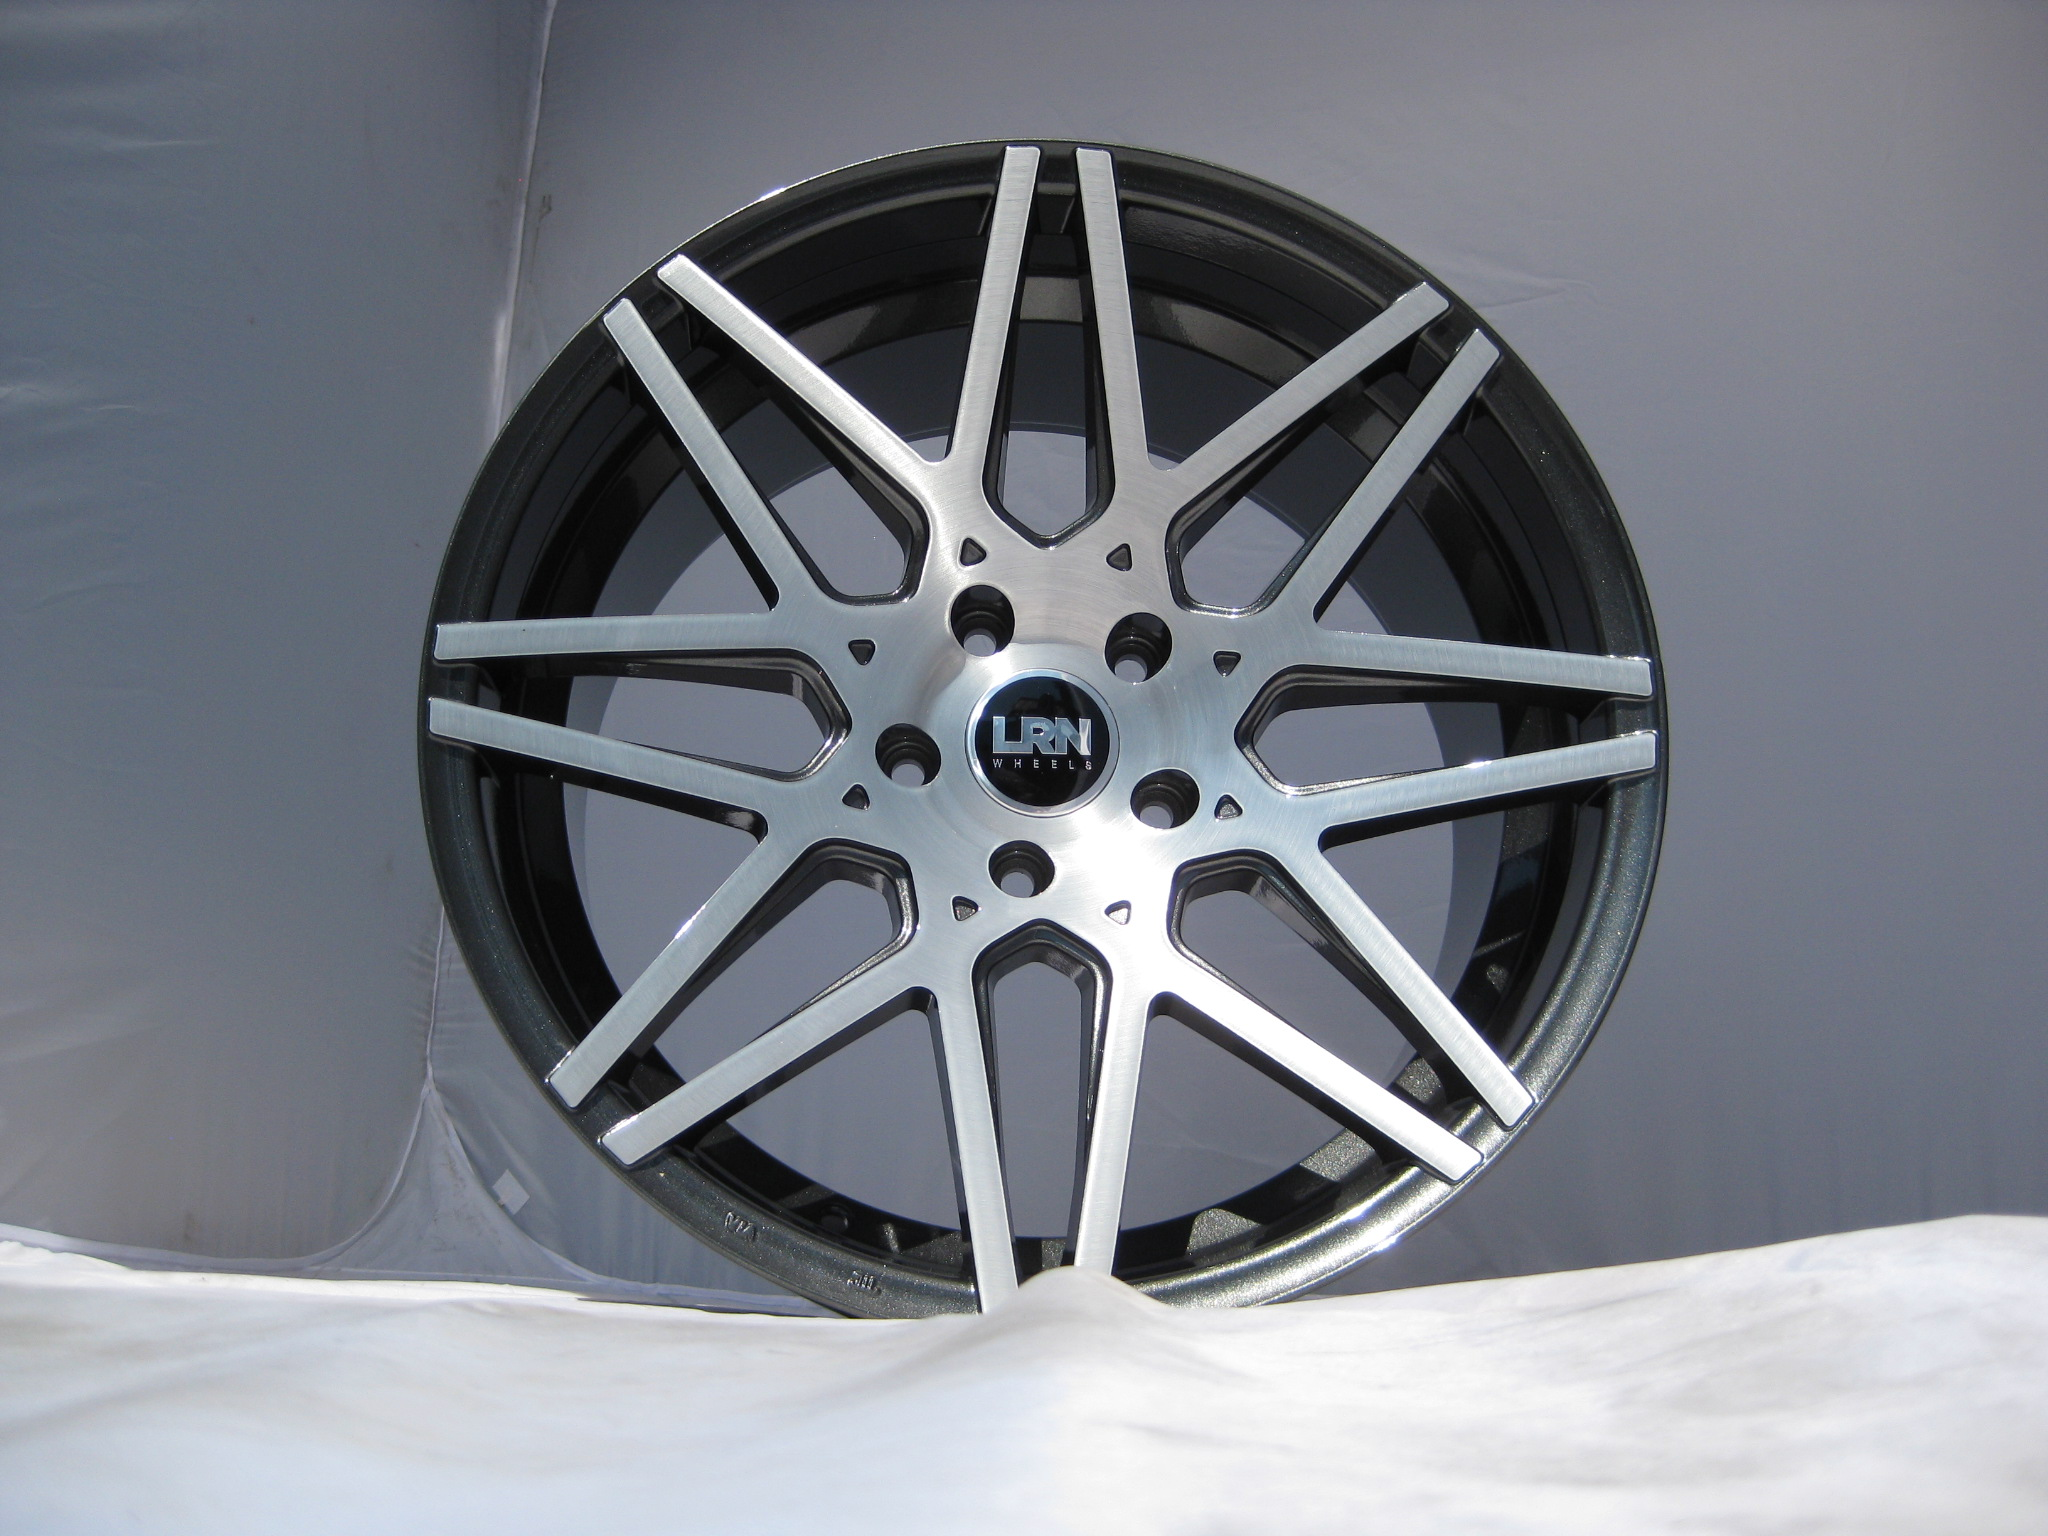 "NEW 19"" LRN BLADE ALLOYS IN METALLIC GUNMETAL WITH BRUSHED FACE, MASSIVE 10.5"" WIDE REARS WITH DEEPER CONCAVE"